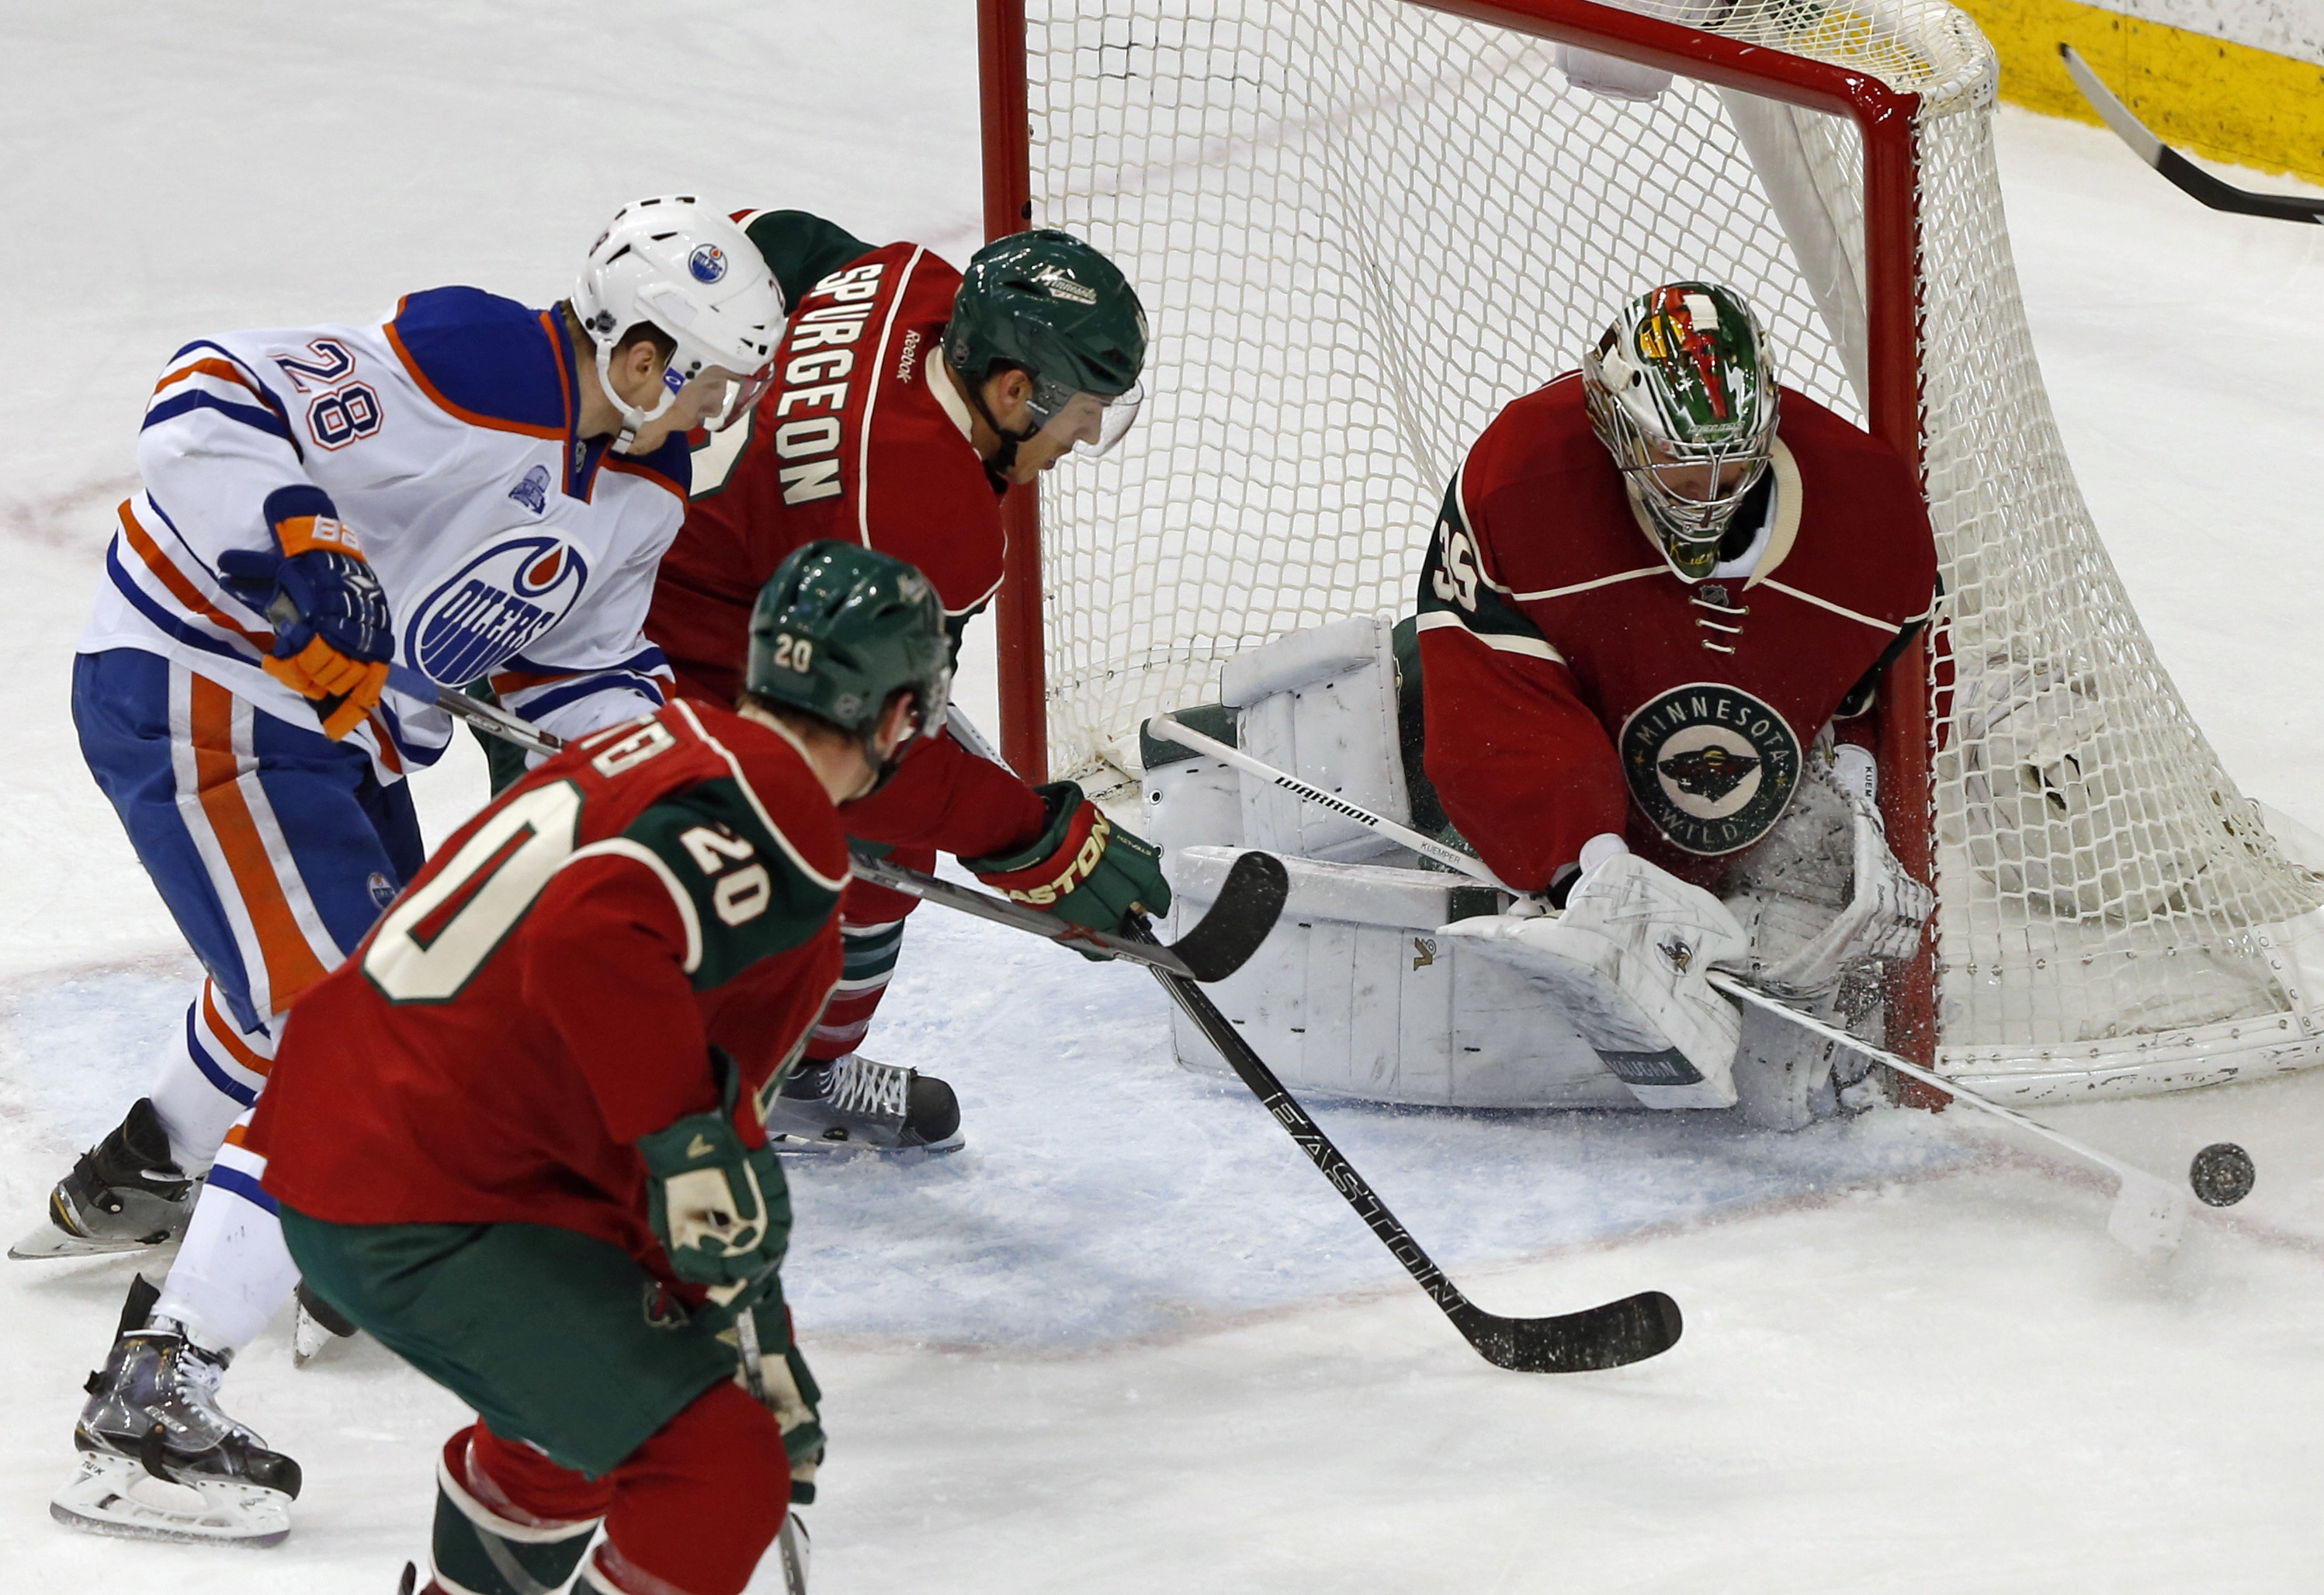 Minnesota Wild goalie Darcy Kuemper, right, blocks a shot as Edmonton Oilers' Lauri Korpikoski, left, of Finland, is caught between Wilds Ryan Suter (20) and Jared Spurgeon in the first period of an NHL hockey game Thursday, March 10, 2016, in St. Paul, M